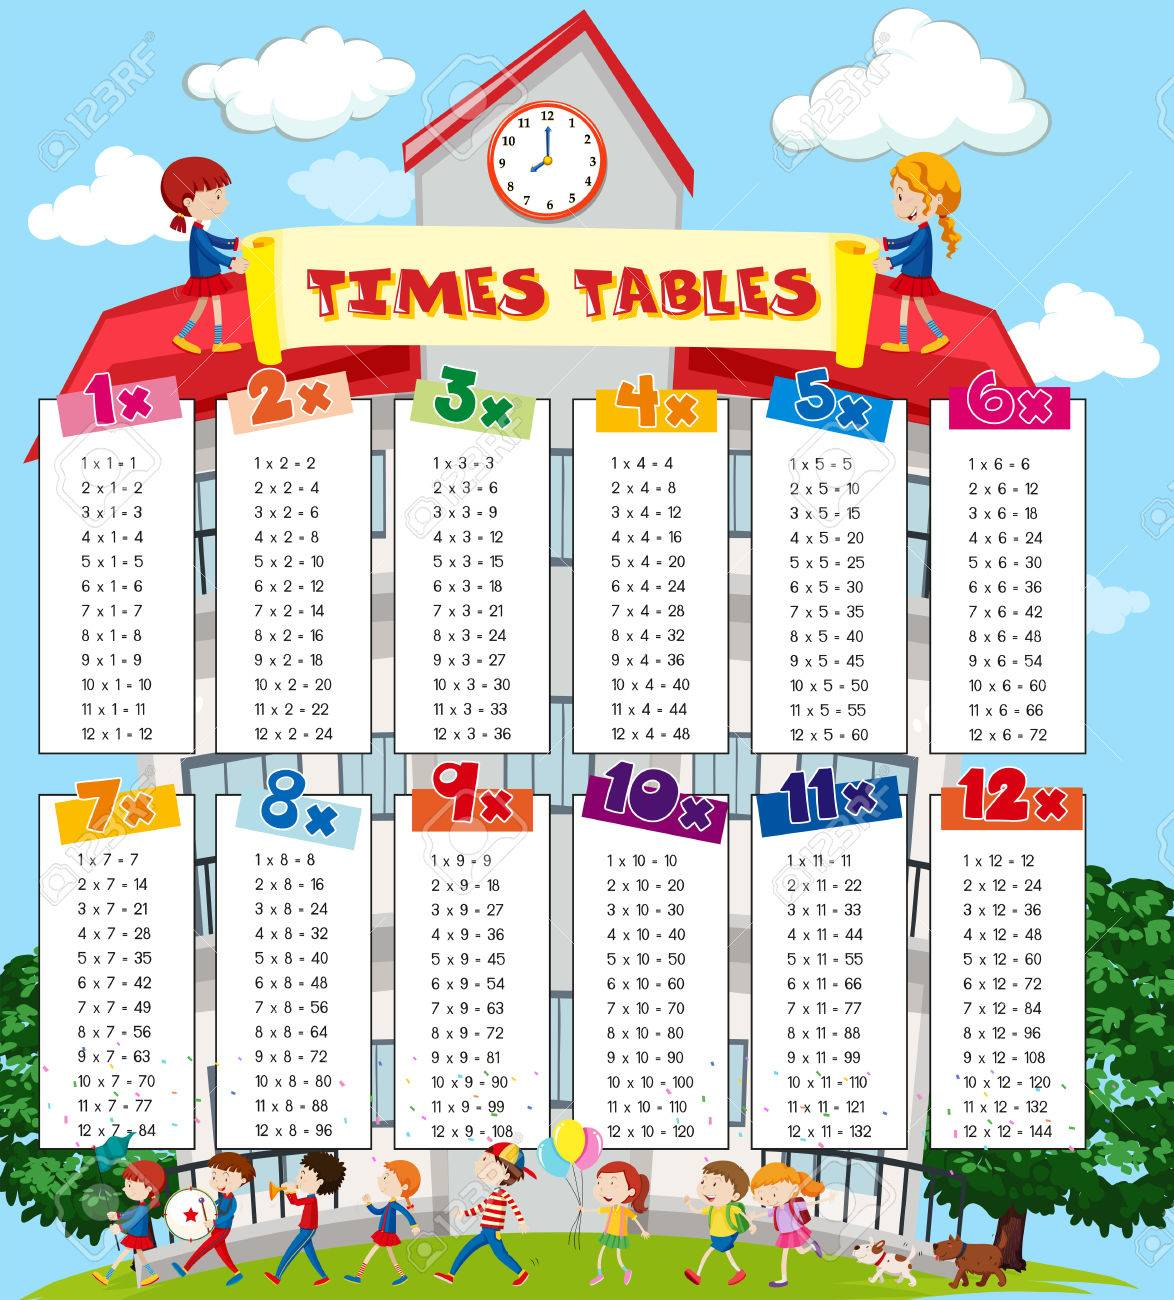 384 Multiplication Table Stock Vector Illustration And Royalty ... for School Table Clipart  111ane